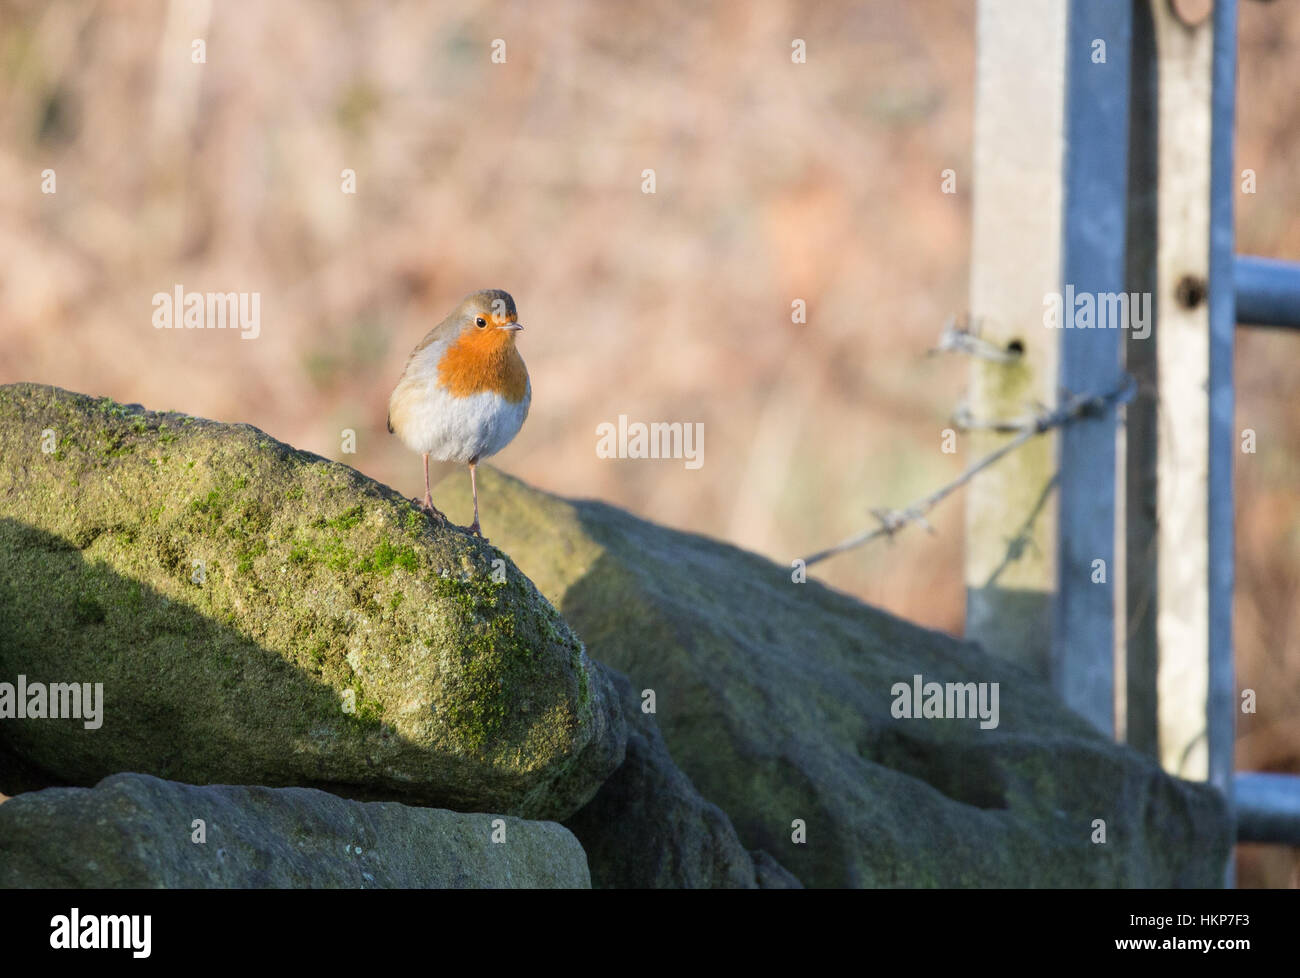 A robin stands on a dry stone wall. - Stock Image